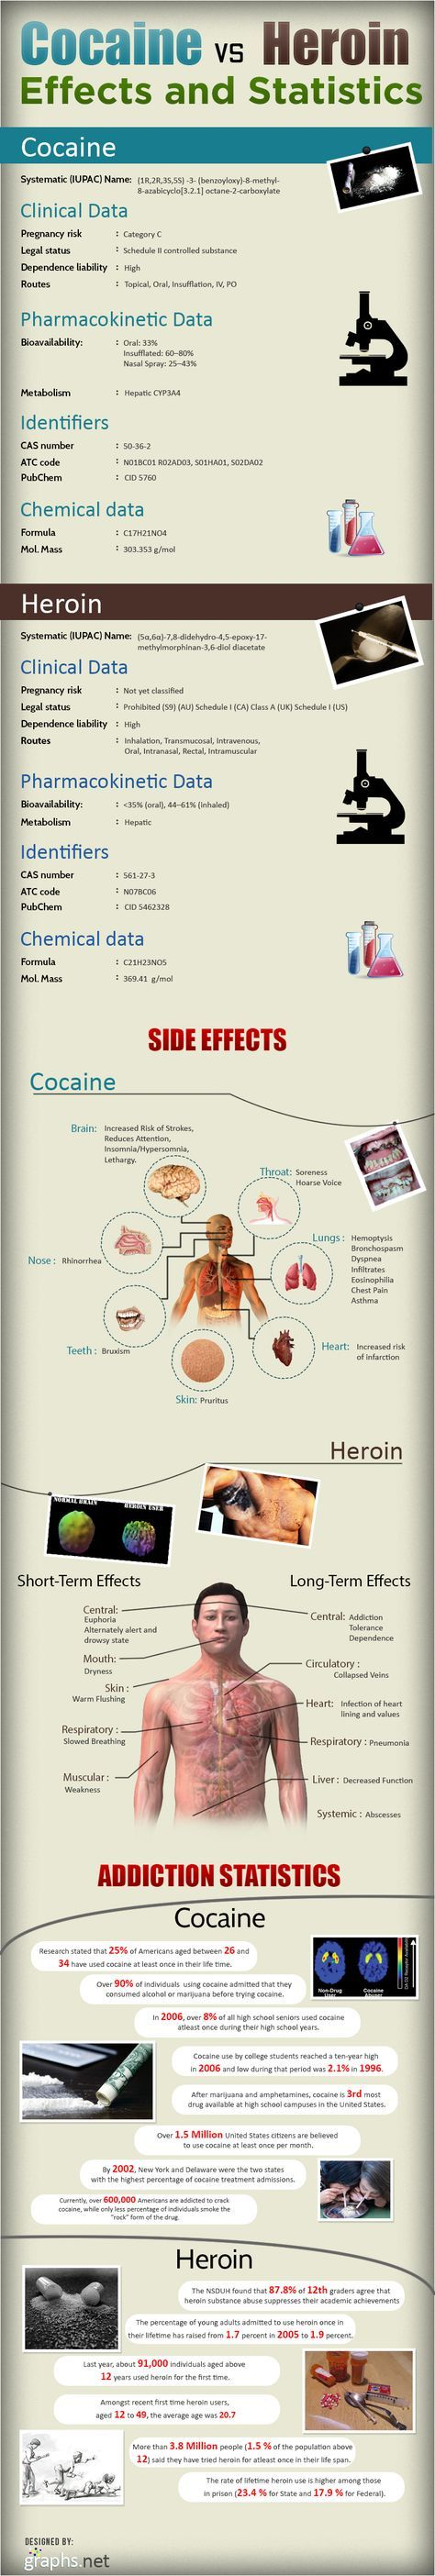 Here's a look at some of the side effects and statistics of Cocaine and Heroin. Some side effects of Cocaine include increased risk of stroke, reduction in attention, lethargy, hoarse voice, soreness of throat, skin pruritis etc whereas the side effects of Heroin include Mouth dryness, warm flushing in skin, drowsy state and weakness of muscles. -